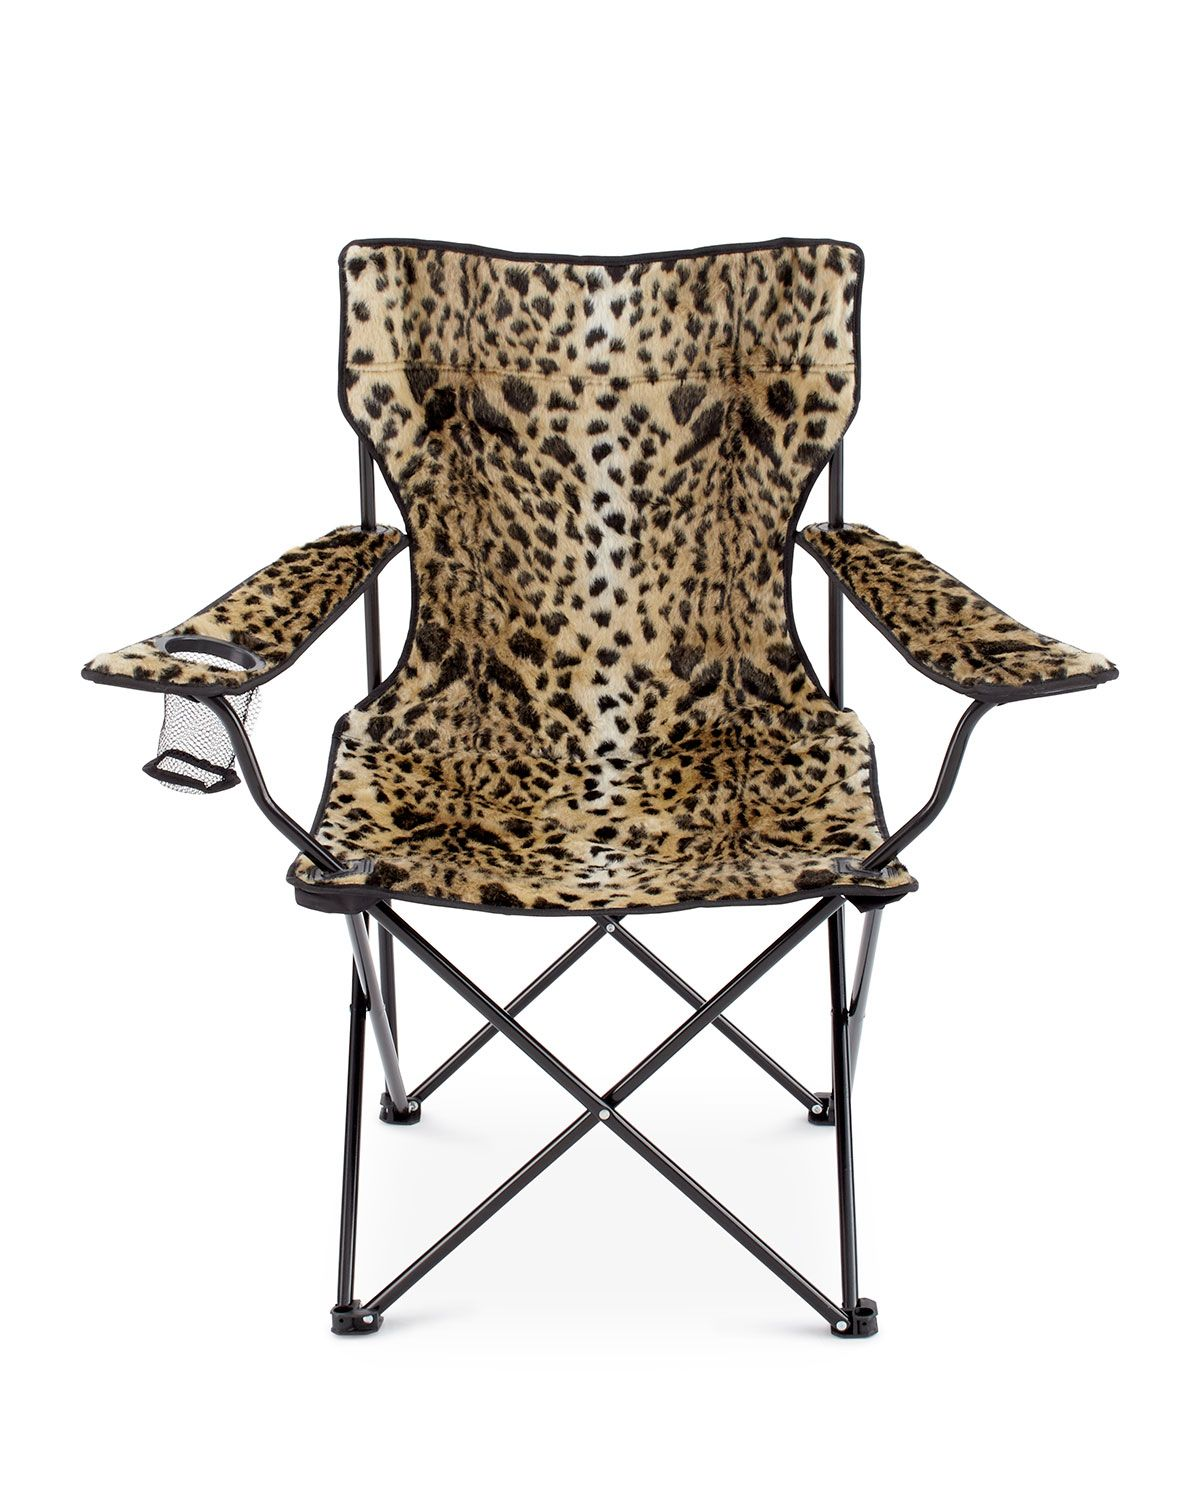 Miraculous Leopard Print Folding Chair Leopard Print Chair Leather Beatyapartments Chair Design Images Beatyapartmentscom